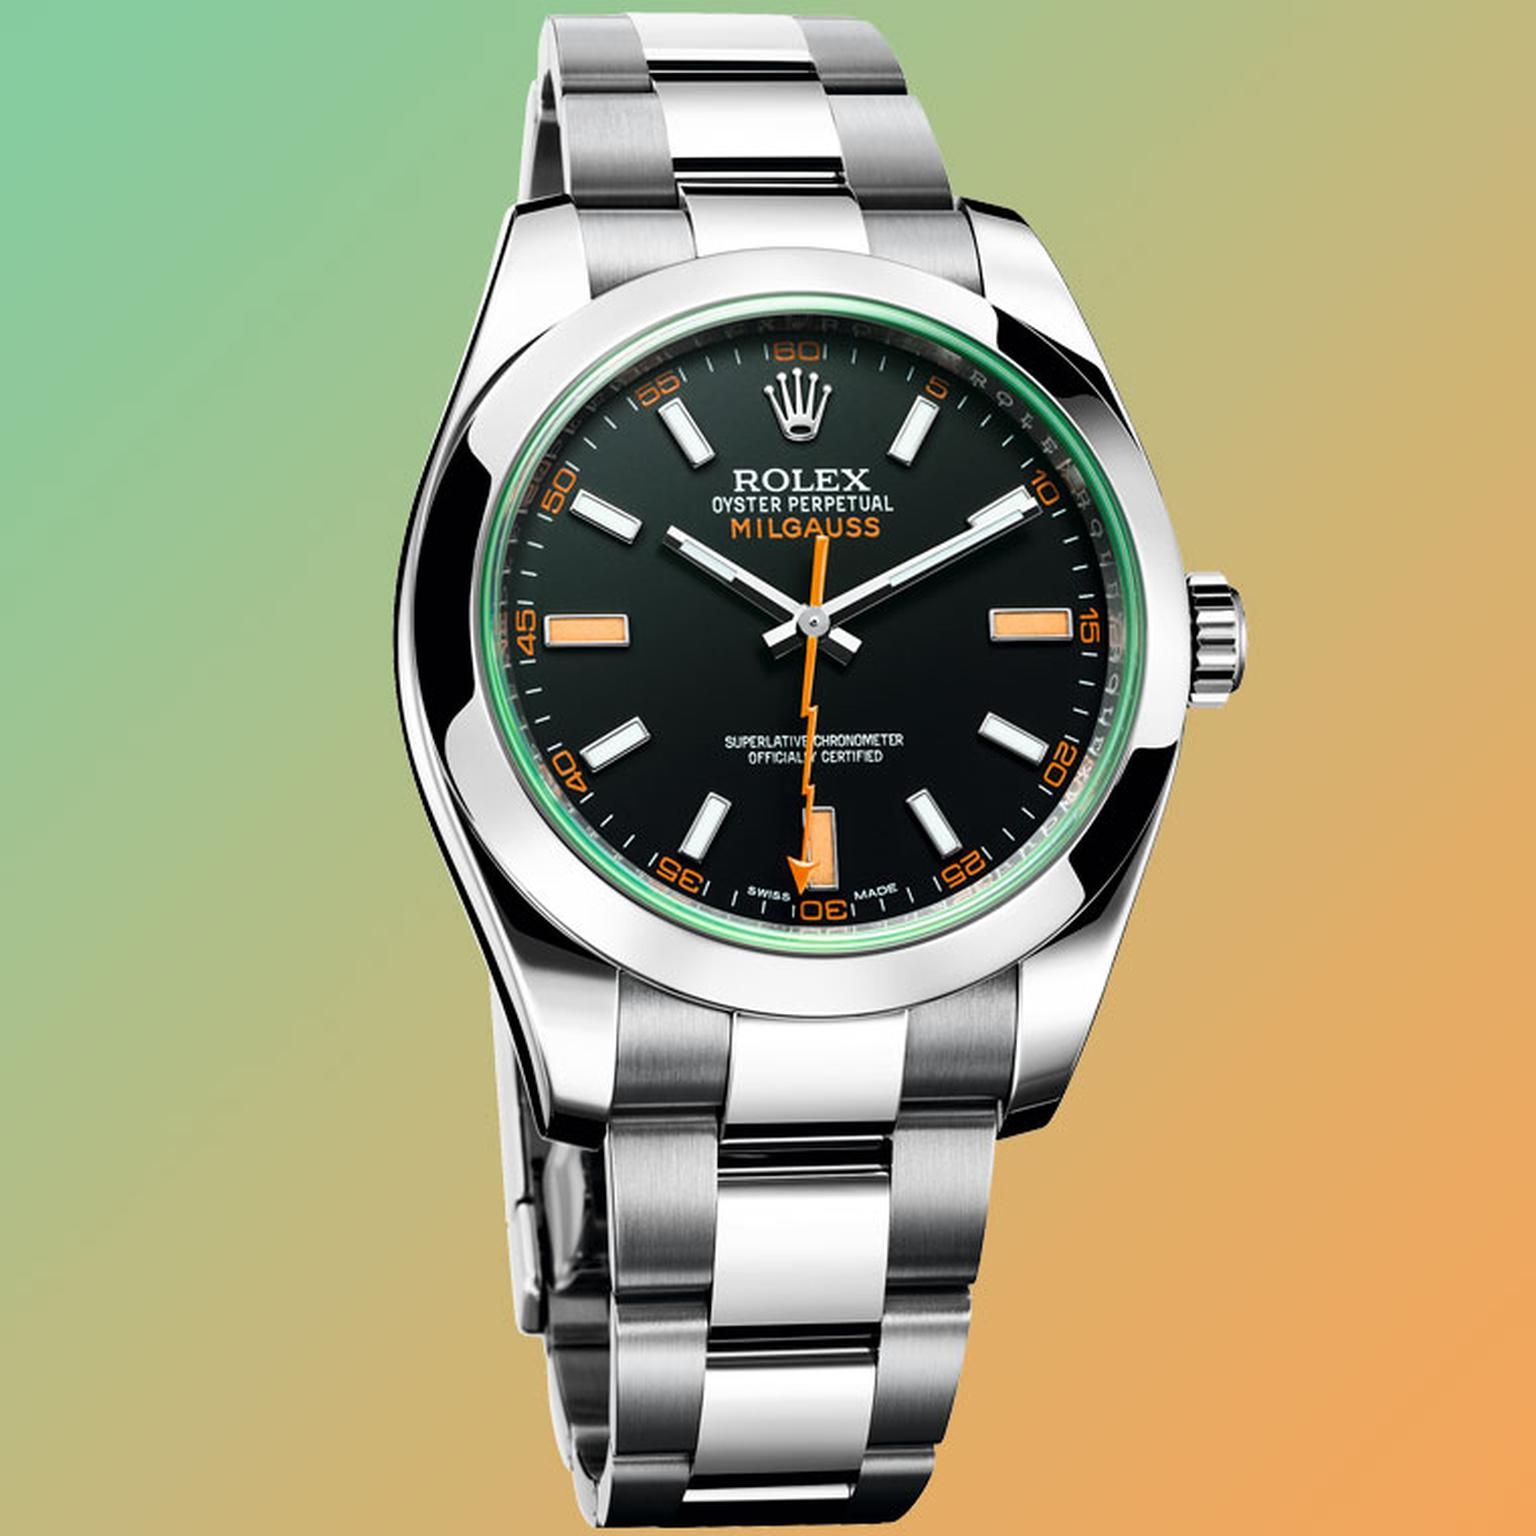 Oyster perpetual milgauss watch rolex the jewellery editor for Rolex milgauss